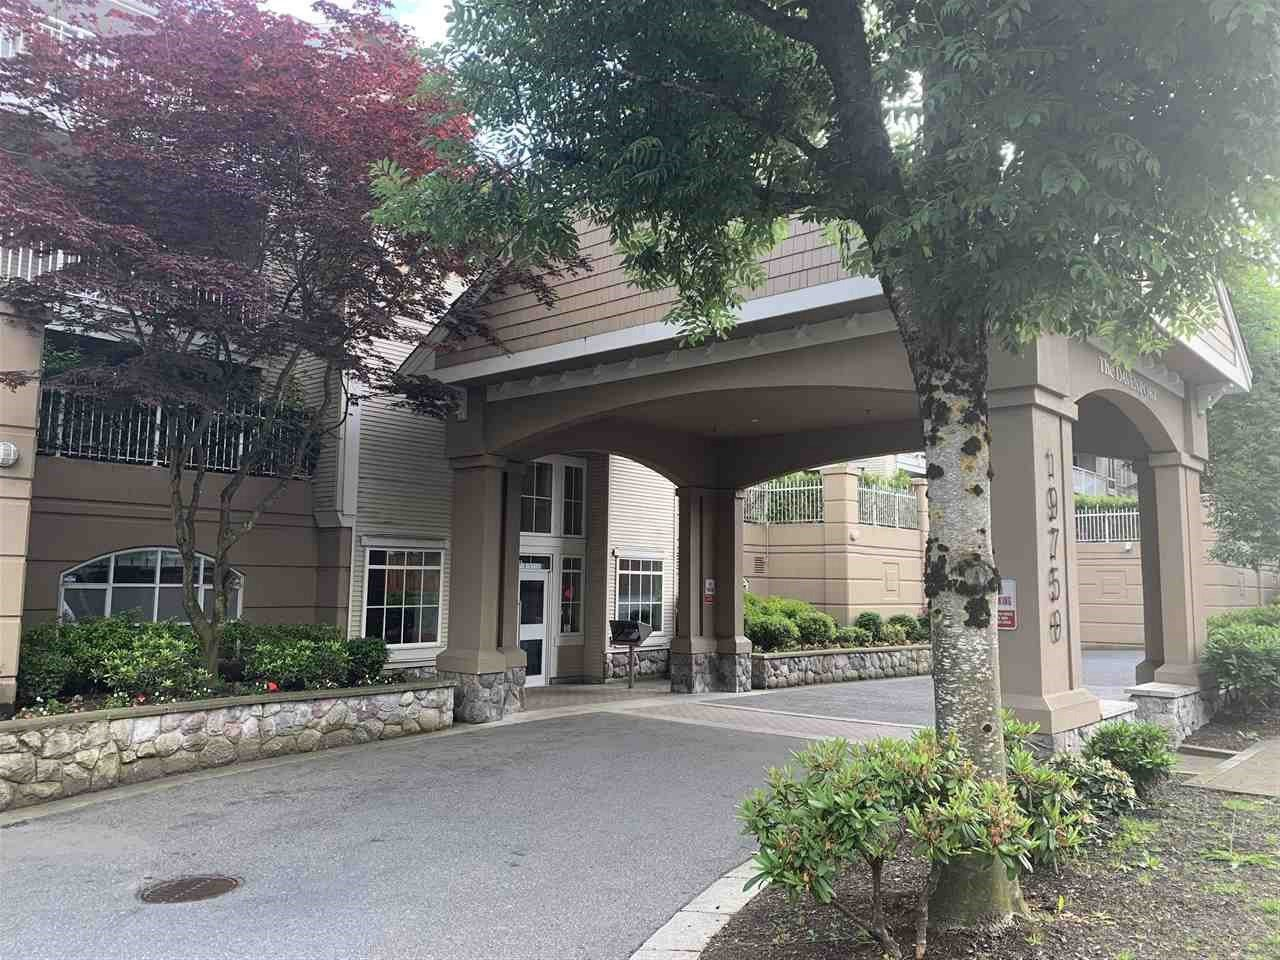 """Main Photo: 207 19750 64 Avenue in Langley: Willoughby Heights Condo for sale in """"THE DAVENPORT"""" : MLS®# R2457429"""